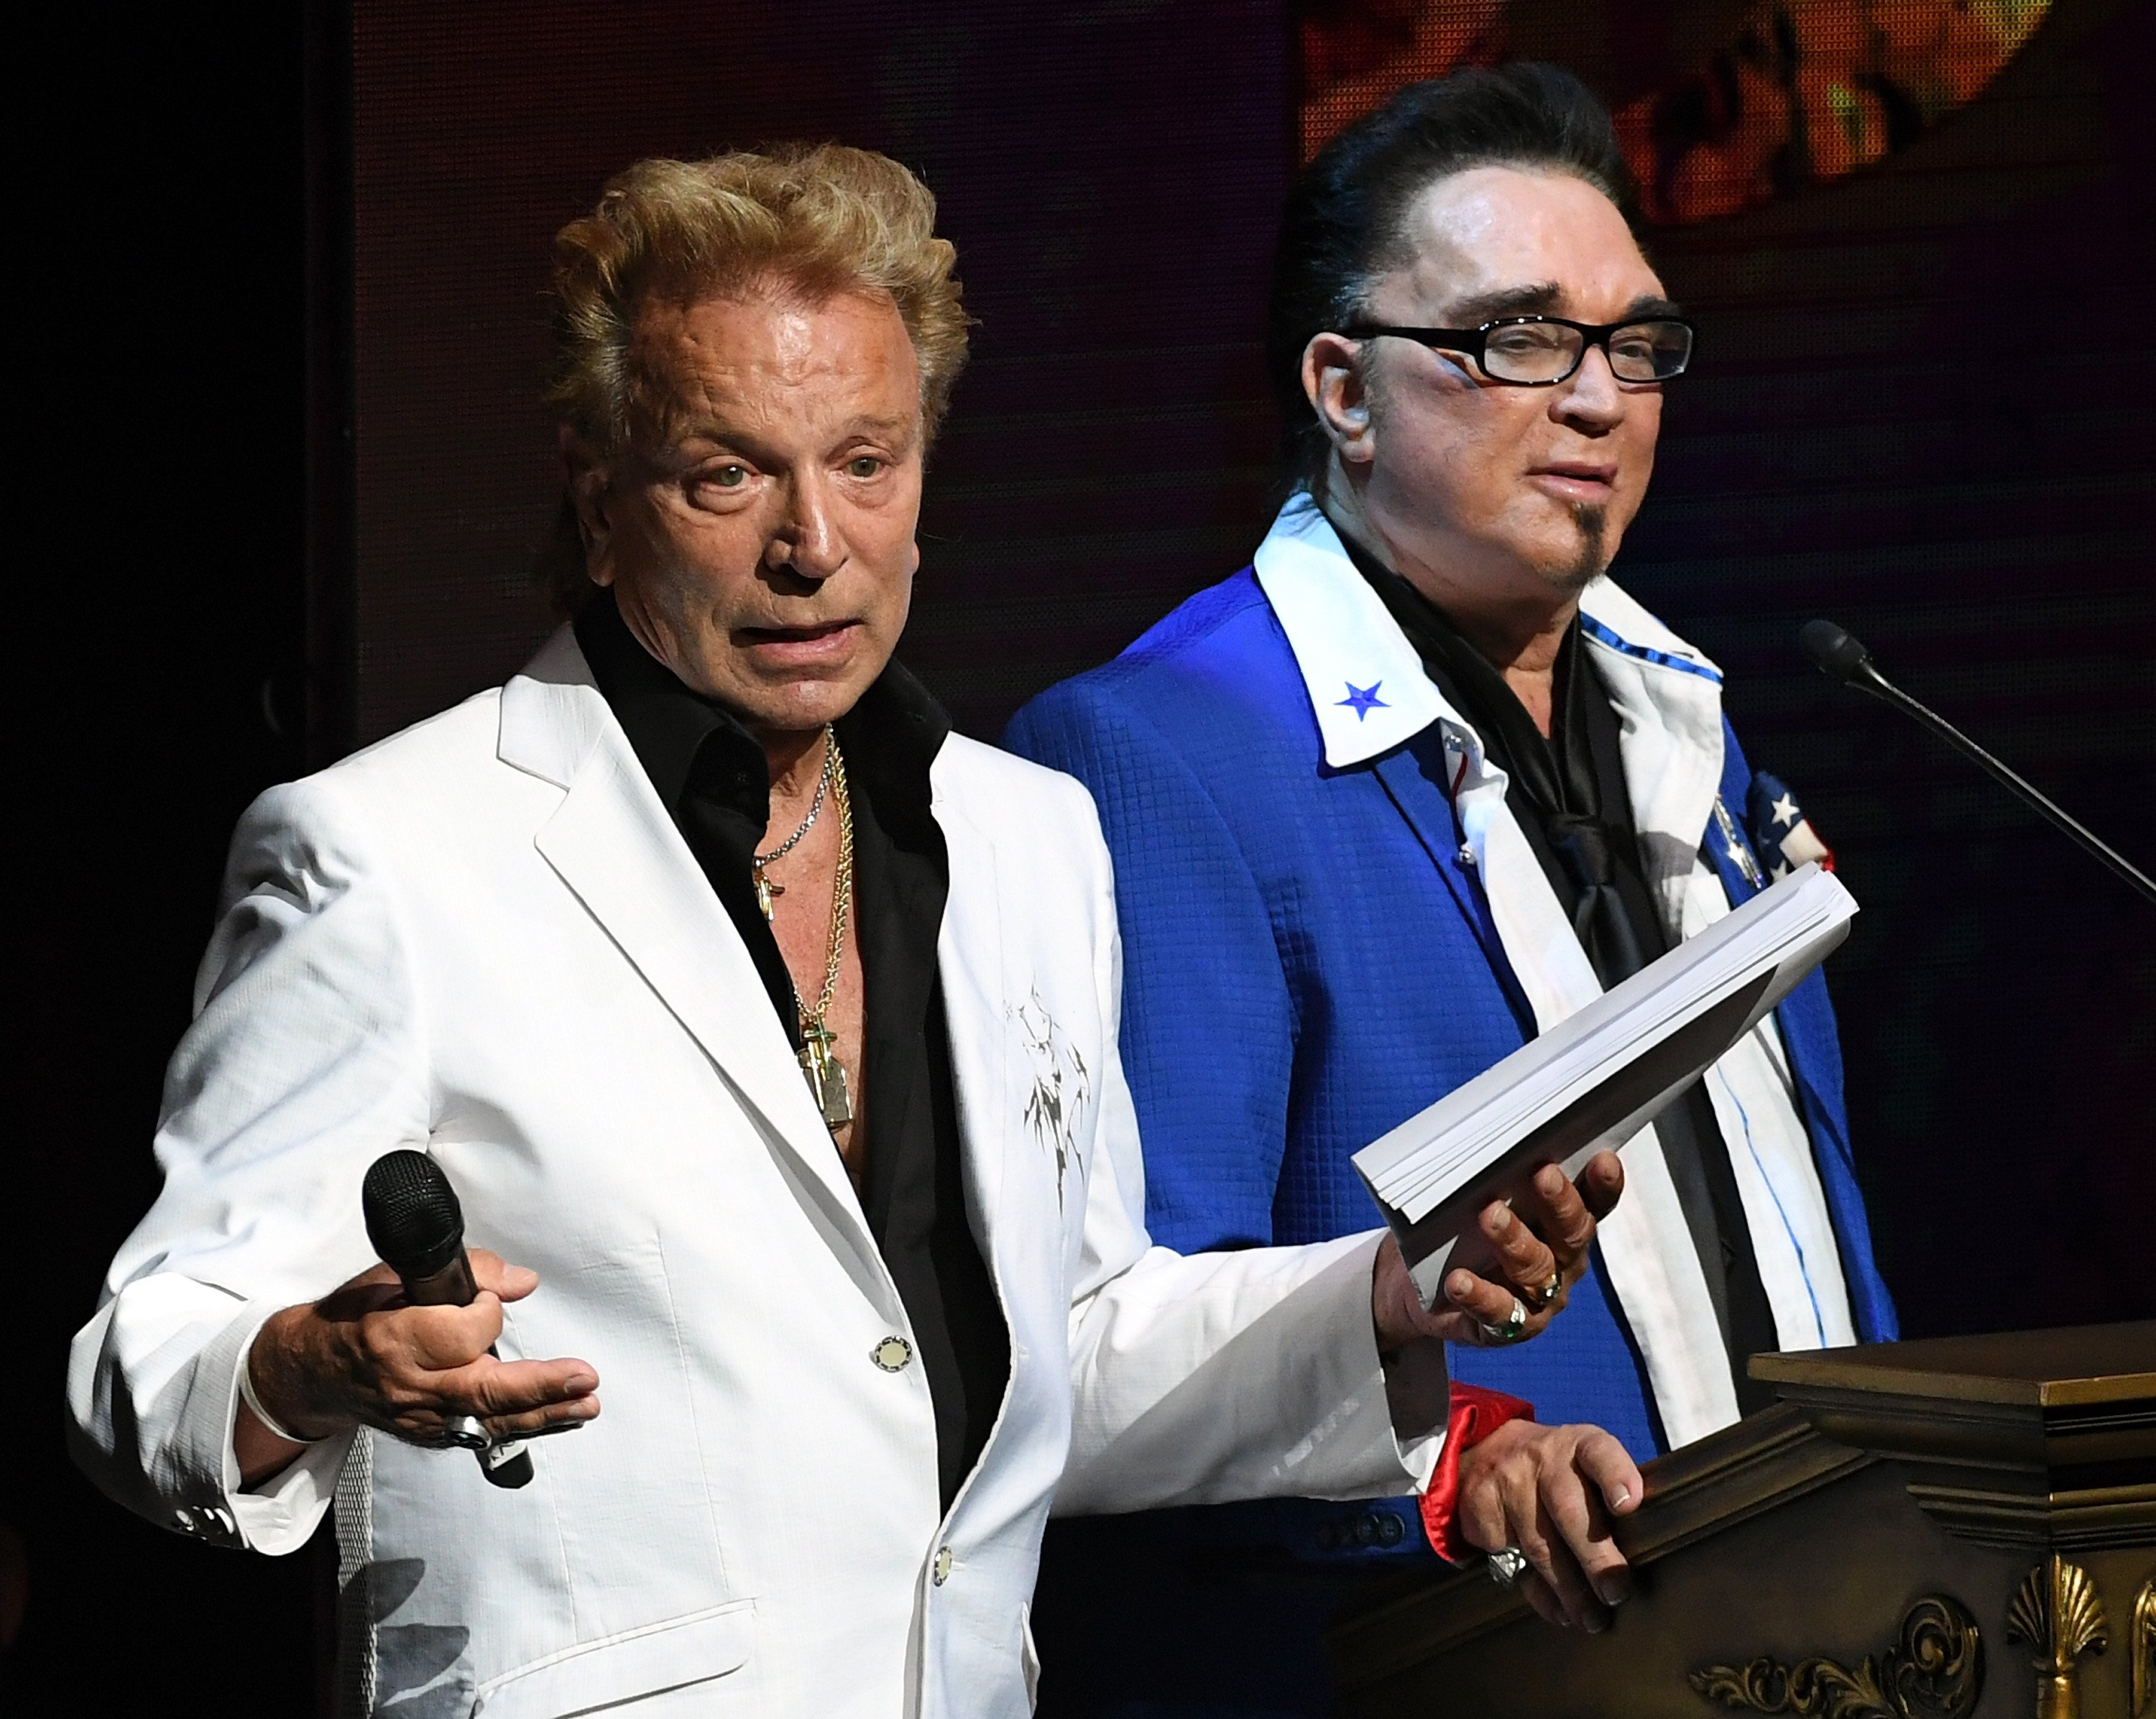 Siegfried Fischbacher (L) and Roy Horn (R) speaking at the HELP event in Las Vegas in September, 2016. | Photo: Getty Images.